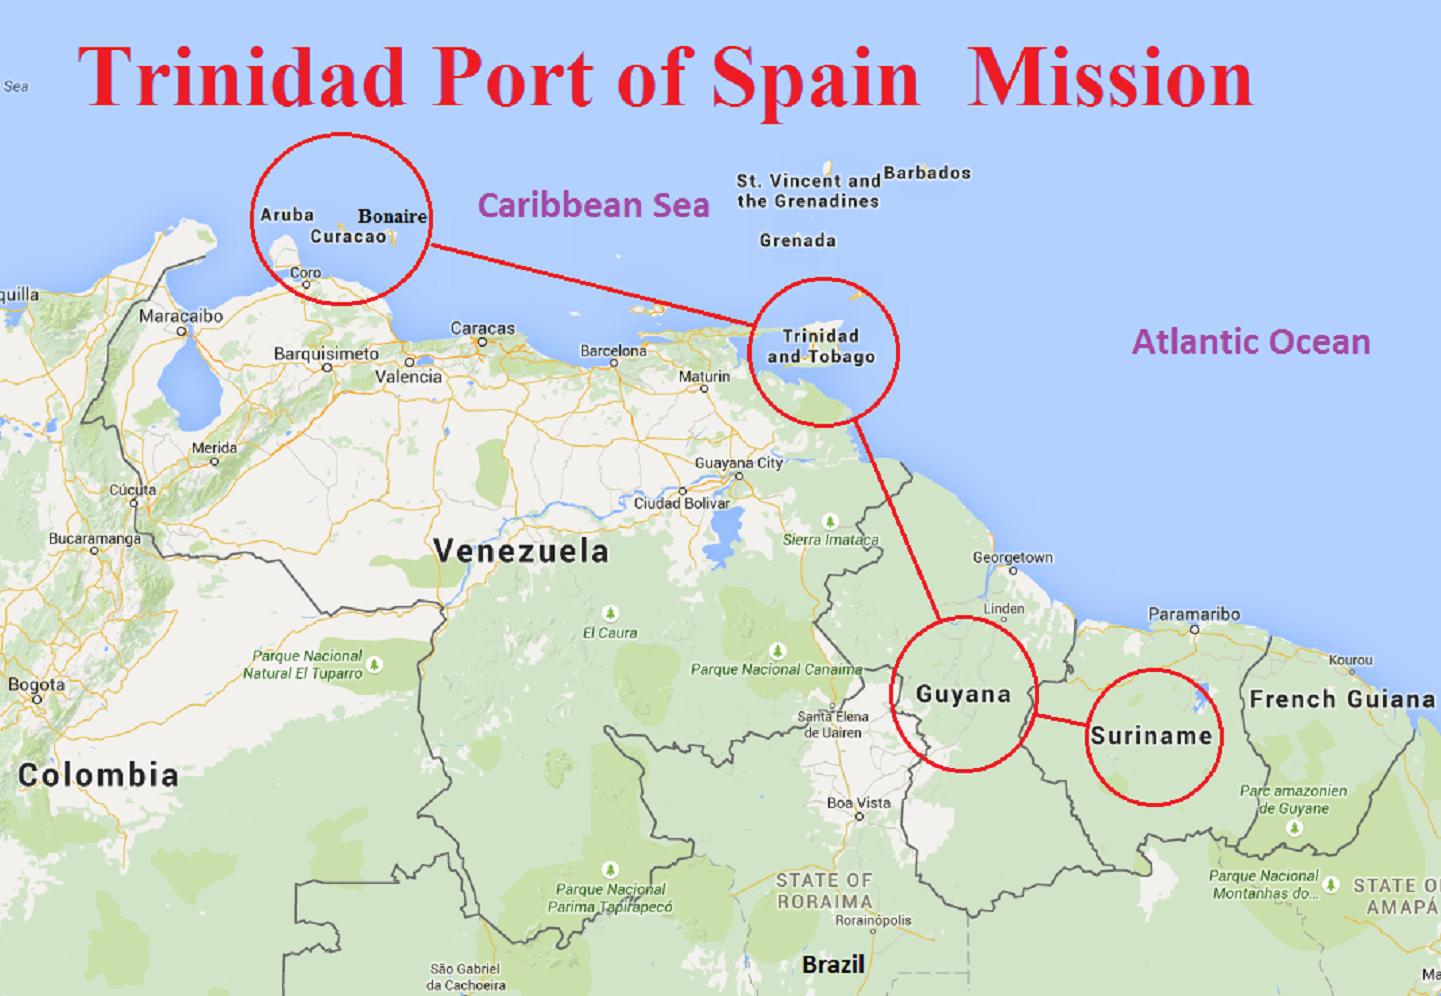 Map of Trinidad Port of Spain Mission